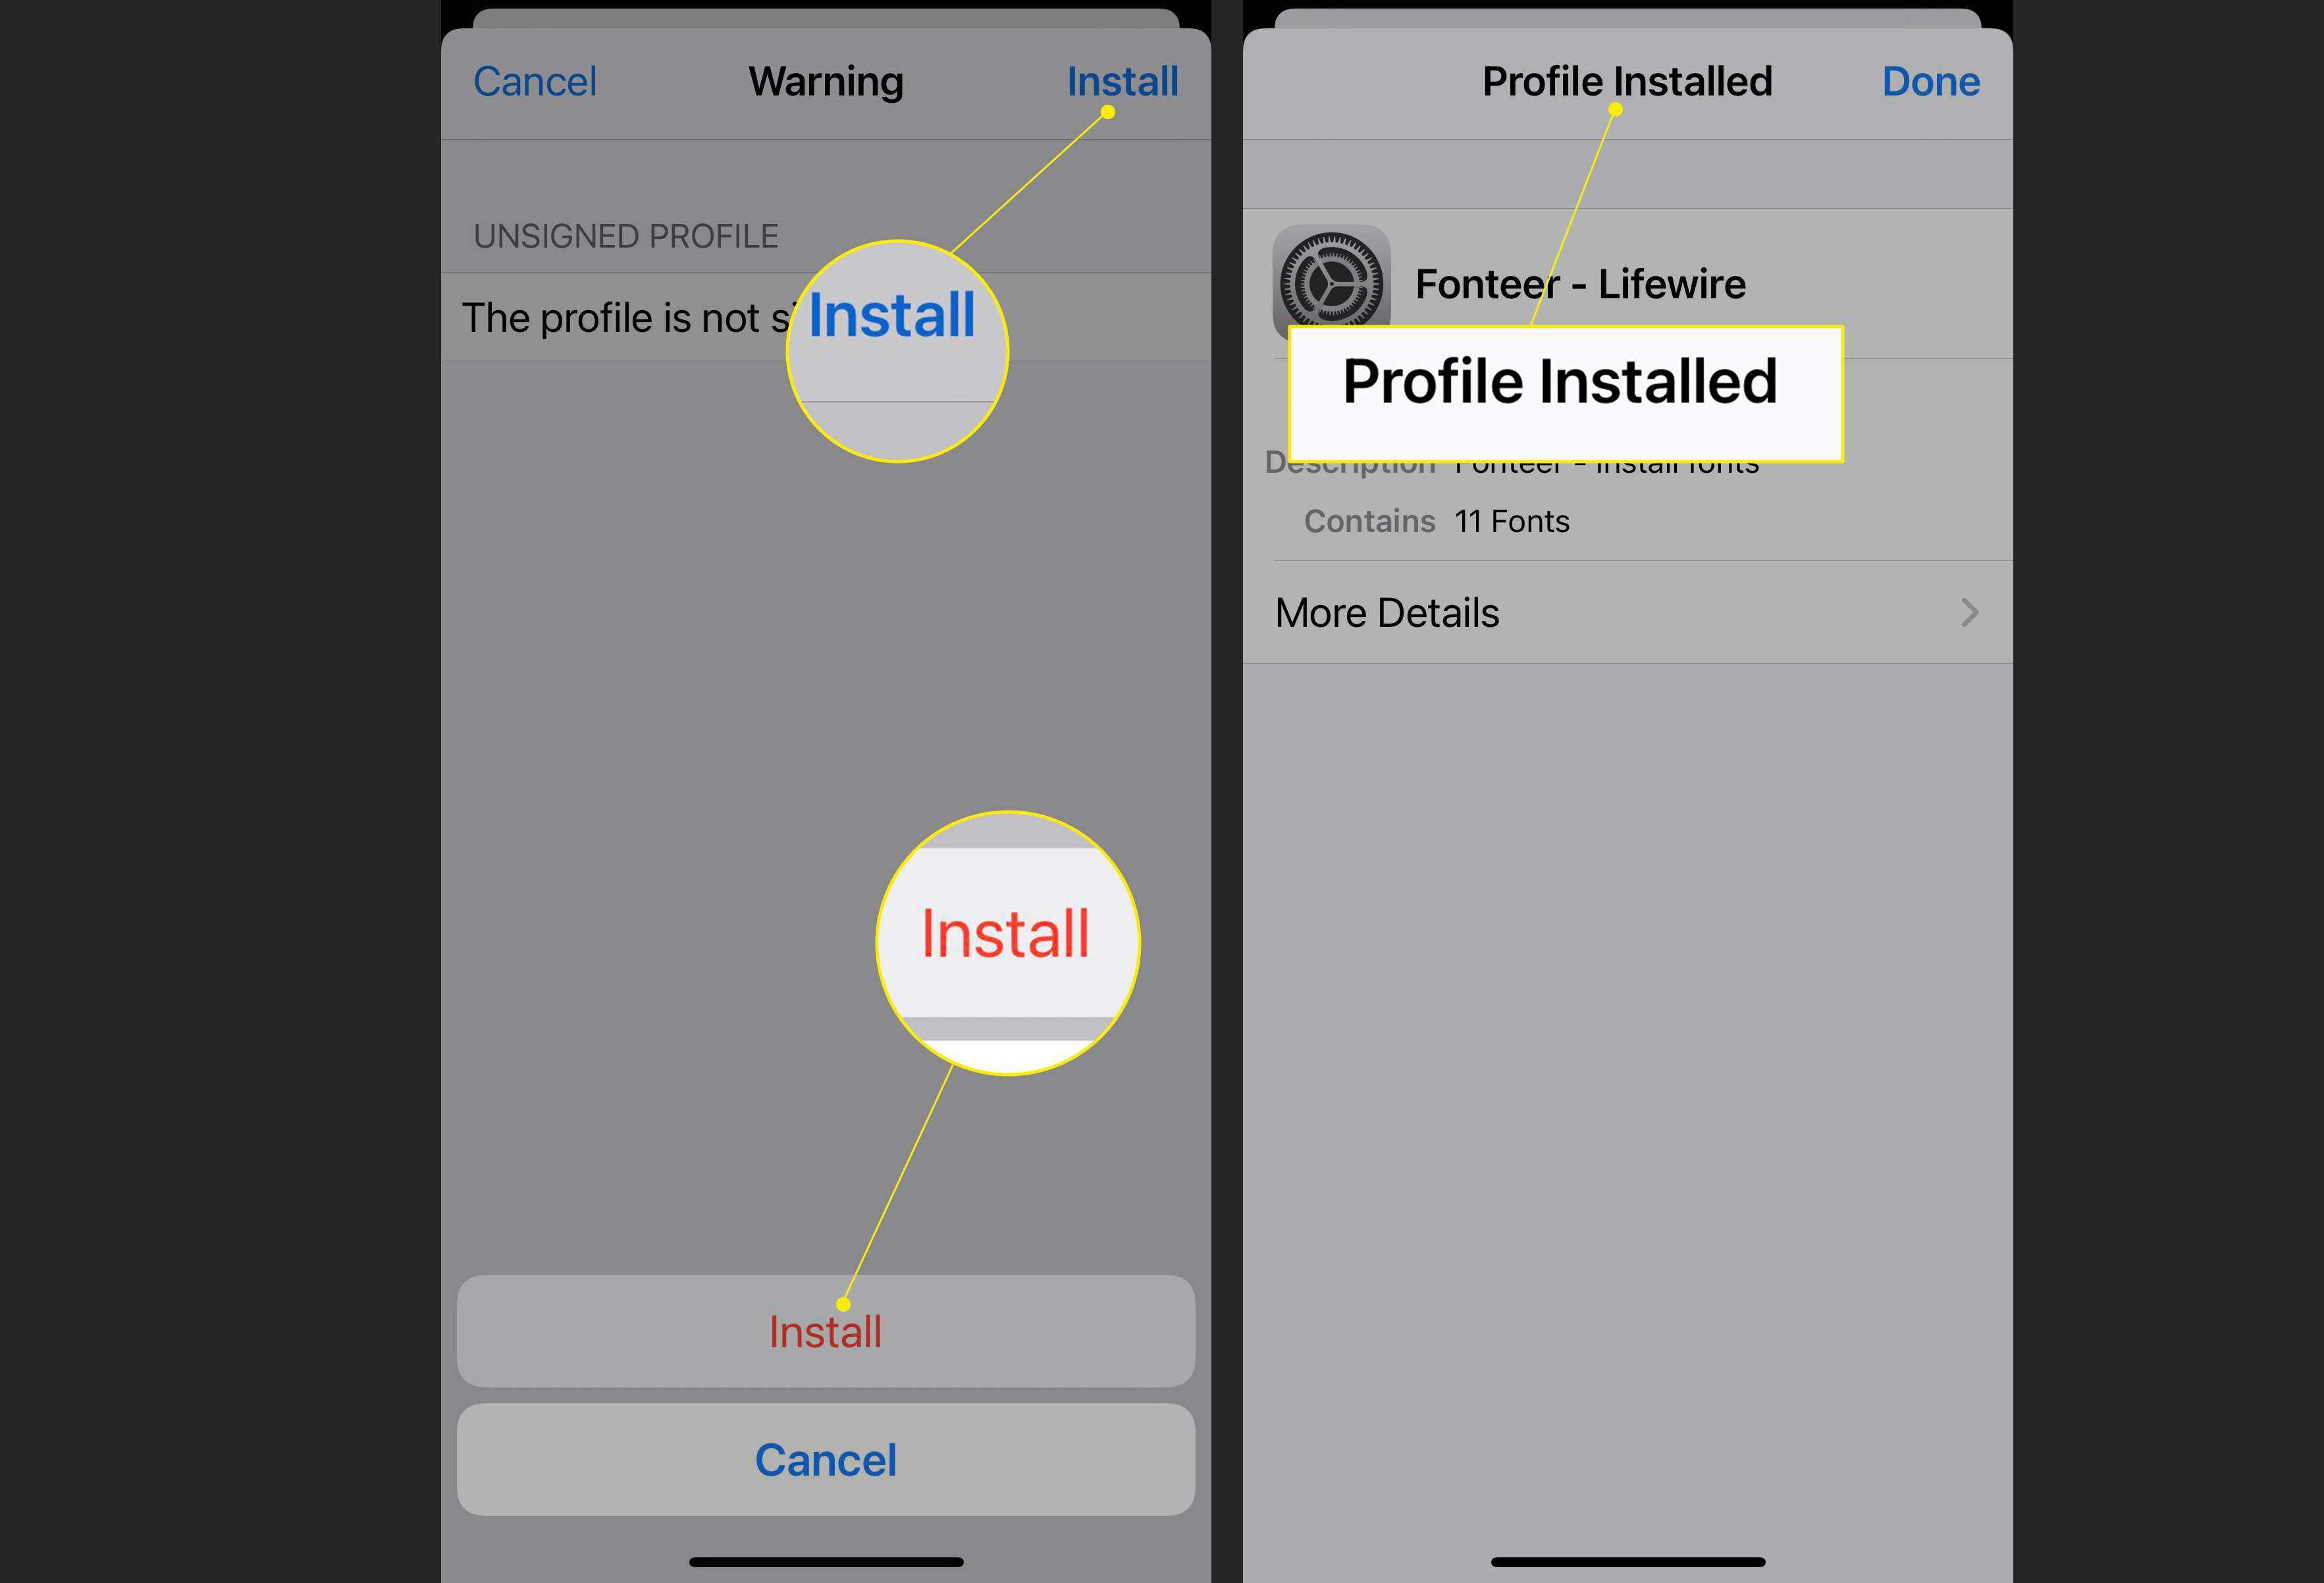 iPhone profile settings with Install > Install highlighted, and Profile Installed message highlighted